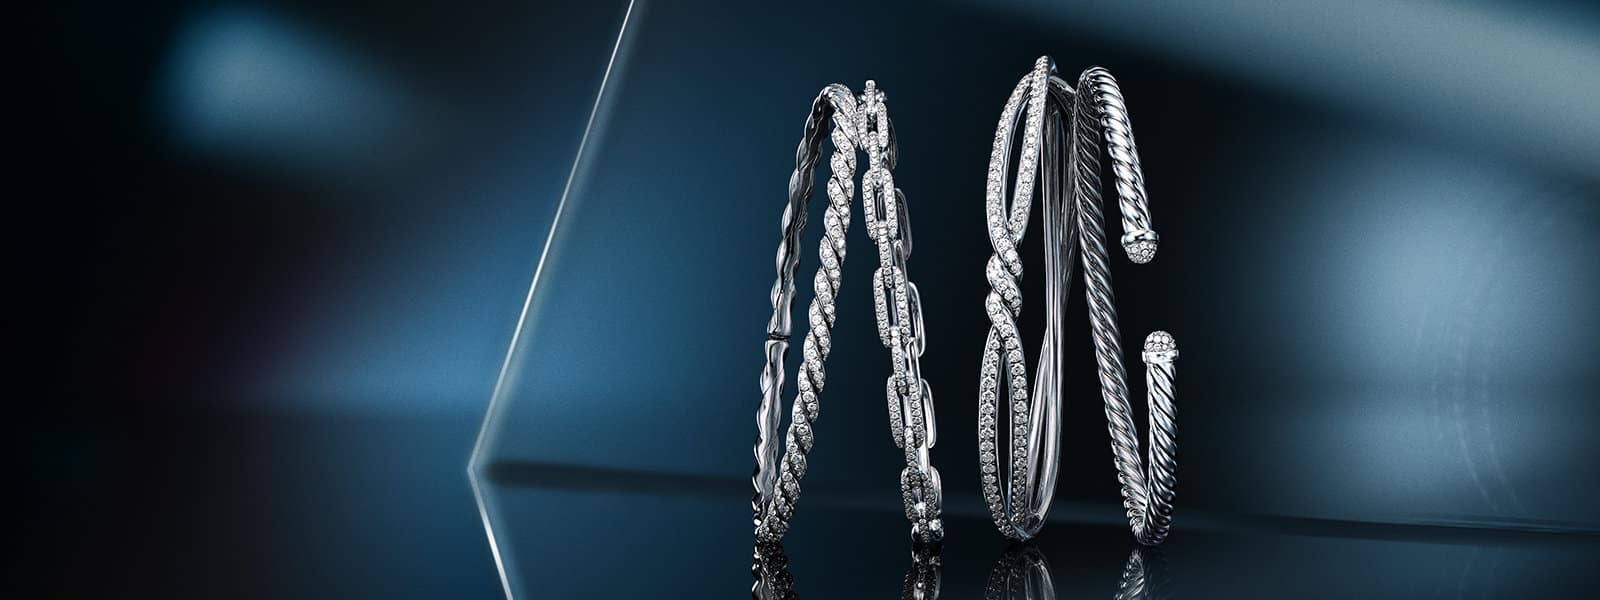 A color photograph shows a horizontal stack of four David Yurman Pavéflex, Stax, Continuance and Cable bracelets leaning against one another in front of a reflective surface with angular, multi-colored reflections of light and gold jewelry. The jewelry is crafted from 18K white gold with pavé white diamonds.